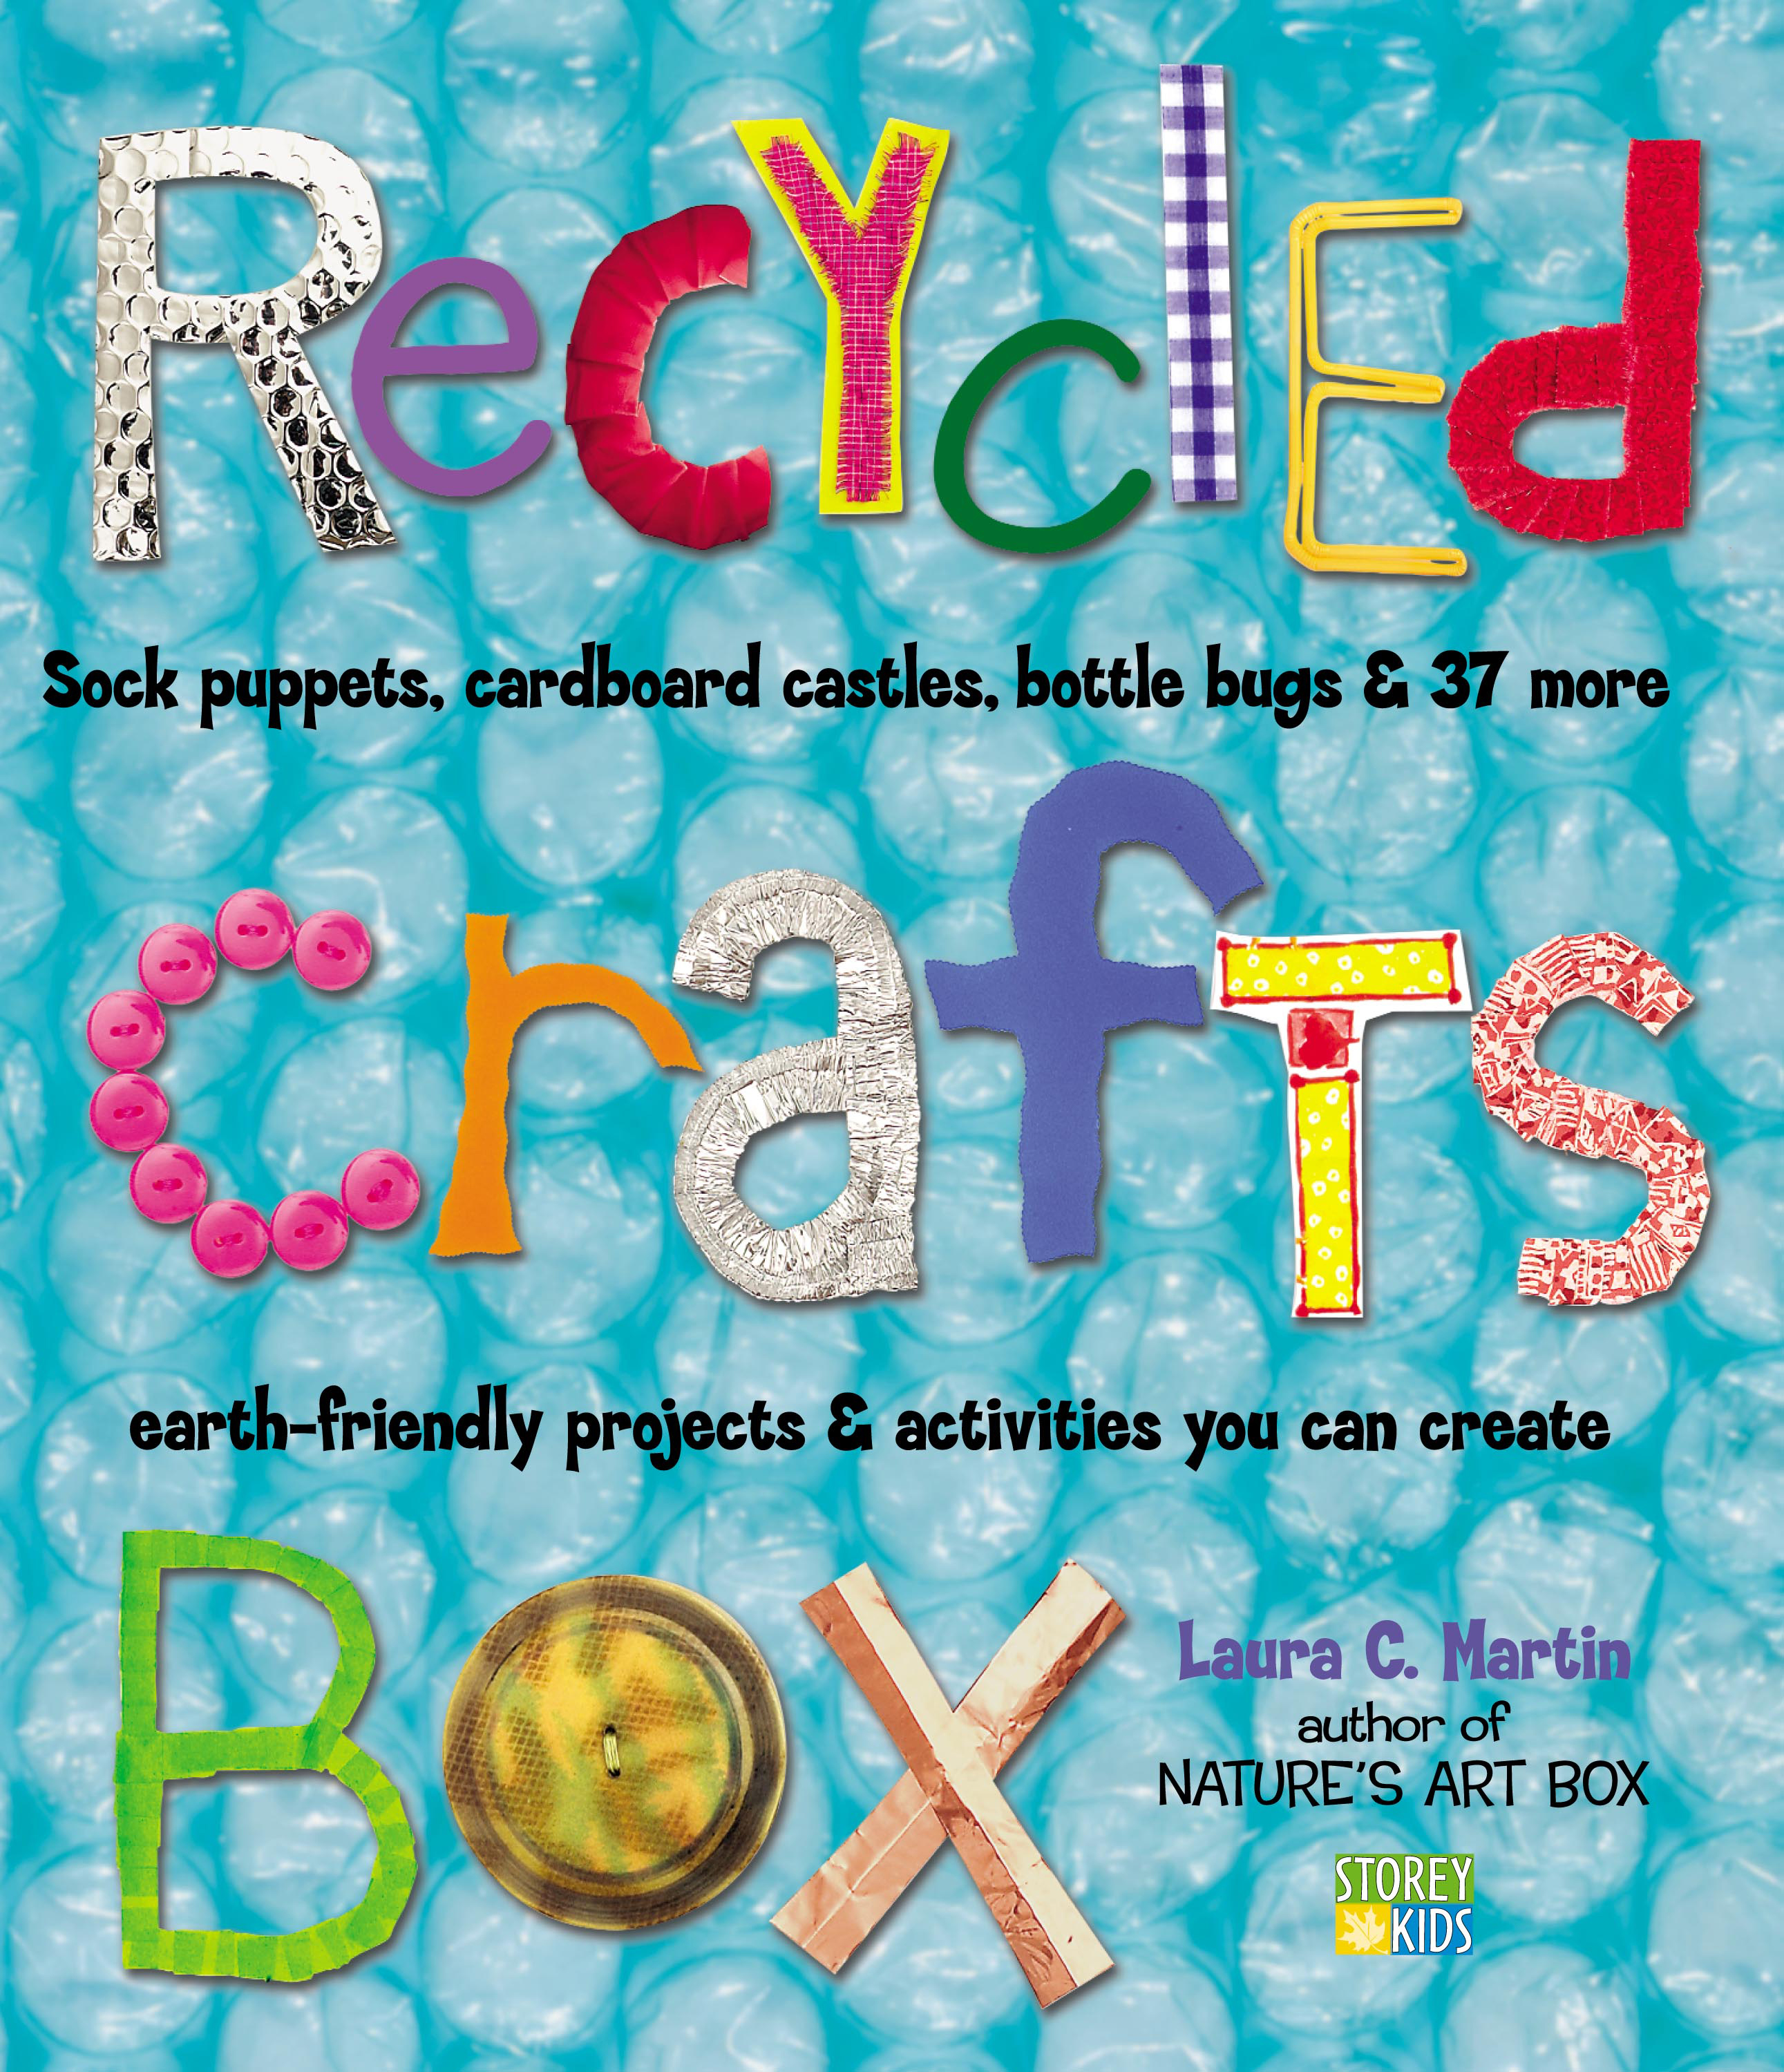 Recycled Crafts Box Sock Puppets, Cardboard Castles, Bottle Bugs & 37 More Earth-Friendly Projects & Activities You Can Create - Laura C. Martin